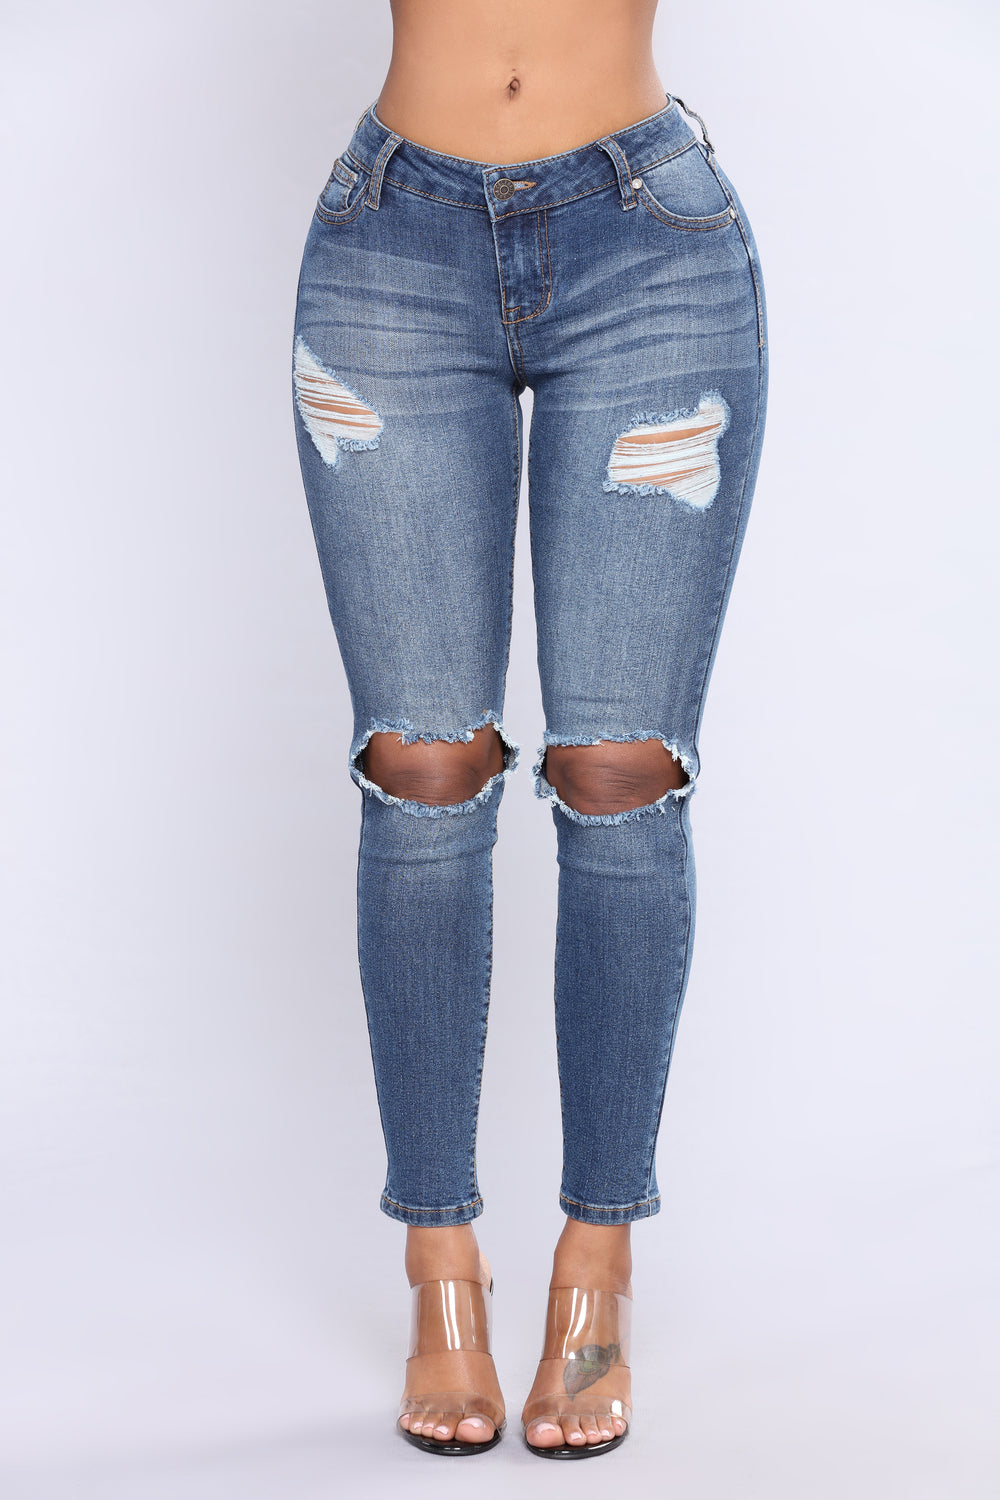 Get It Right Back Ankle Jeans - Medium Blue Wash